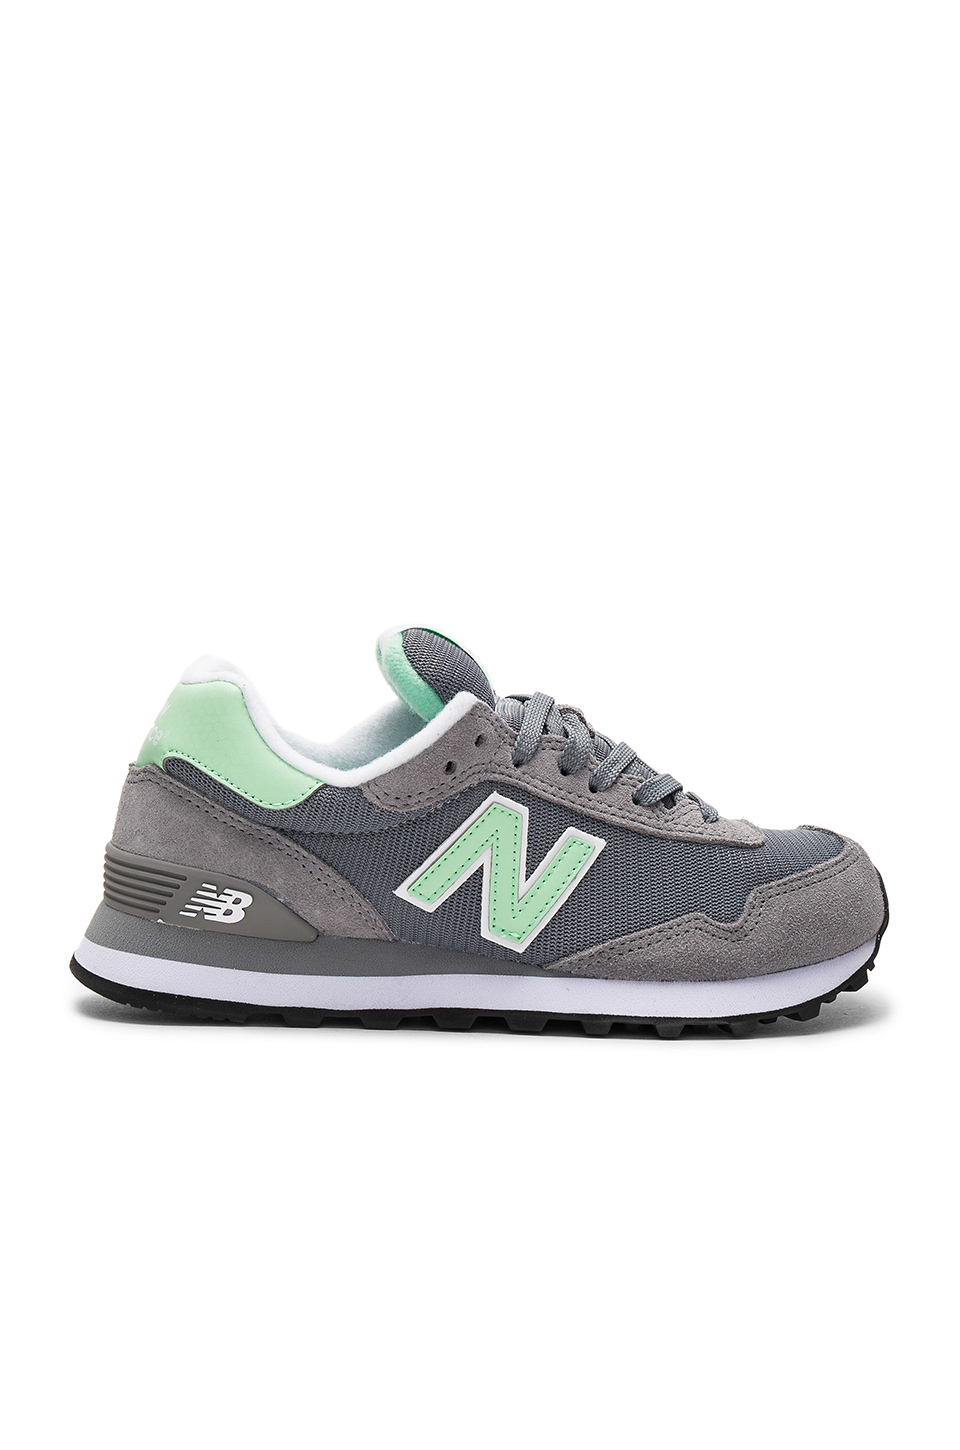 NEW BALANCE 515 Sneaker in Steel & Agave